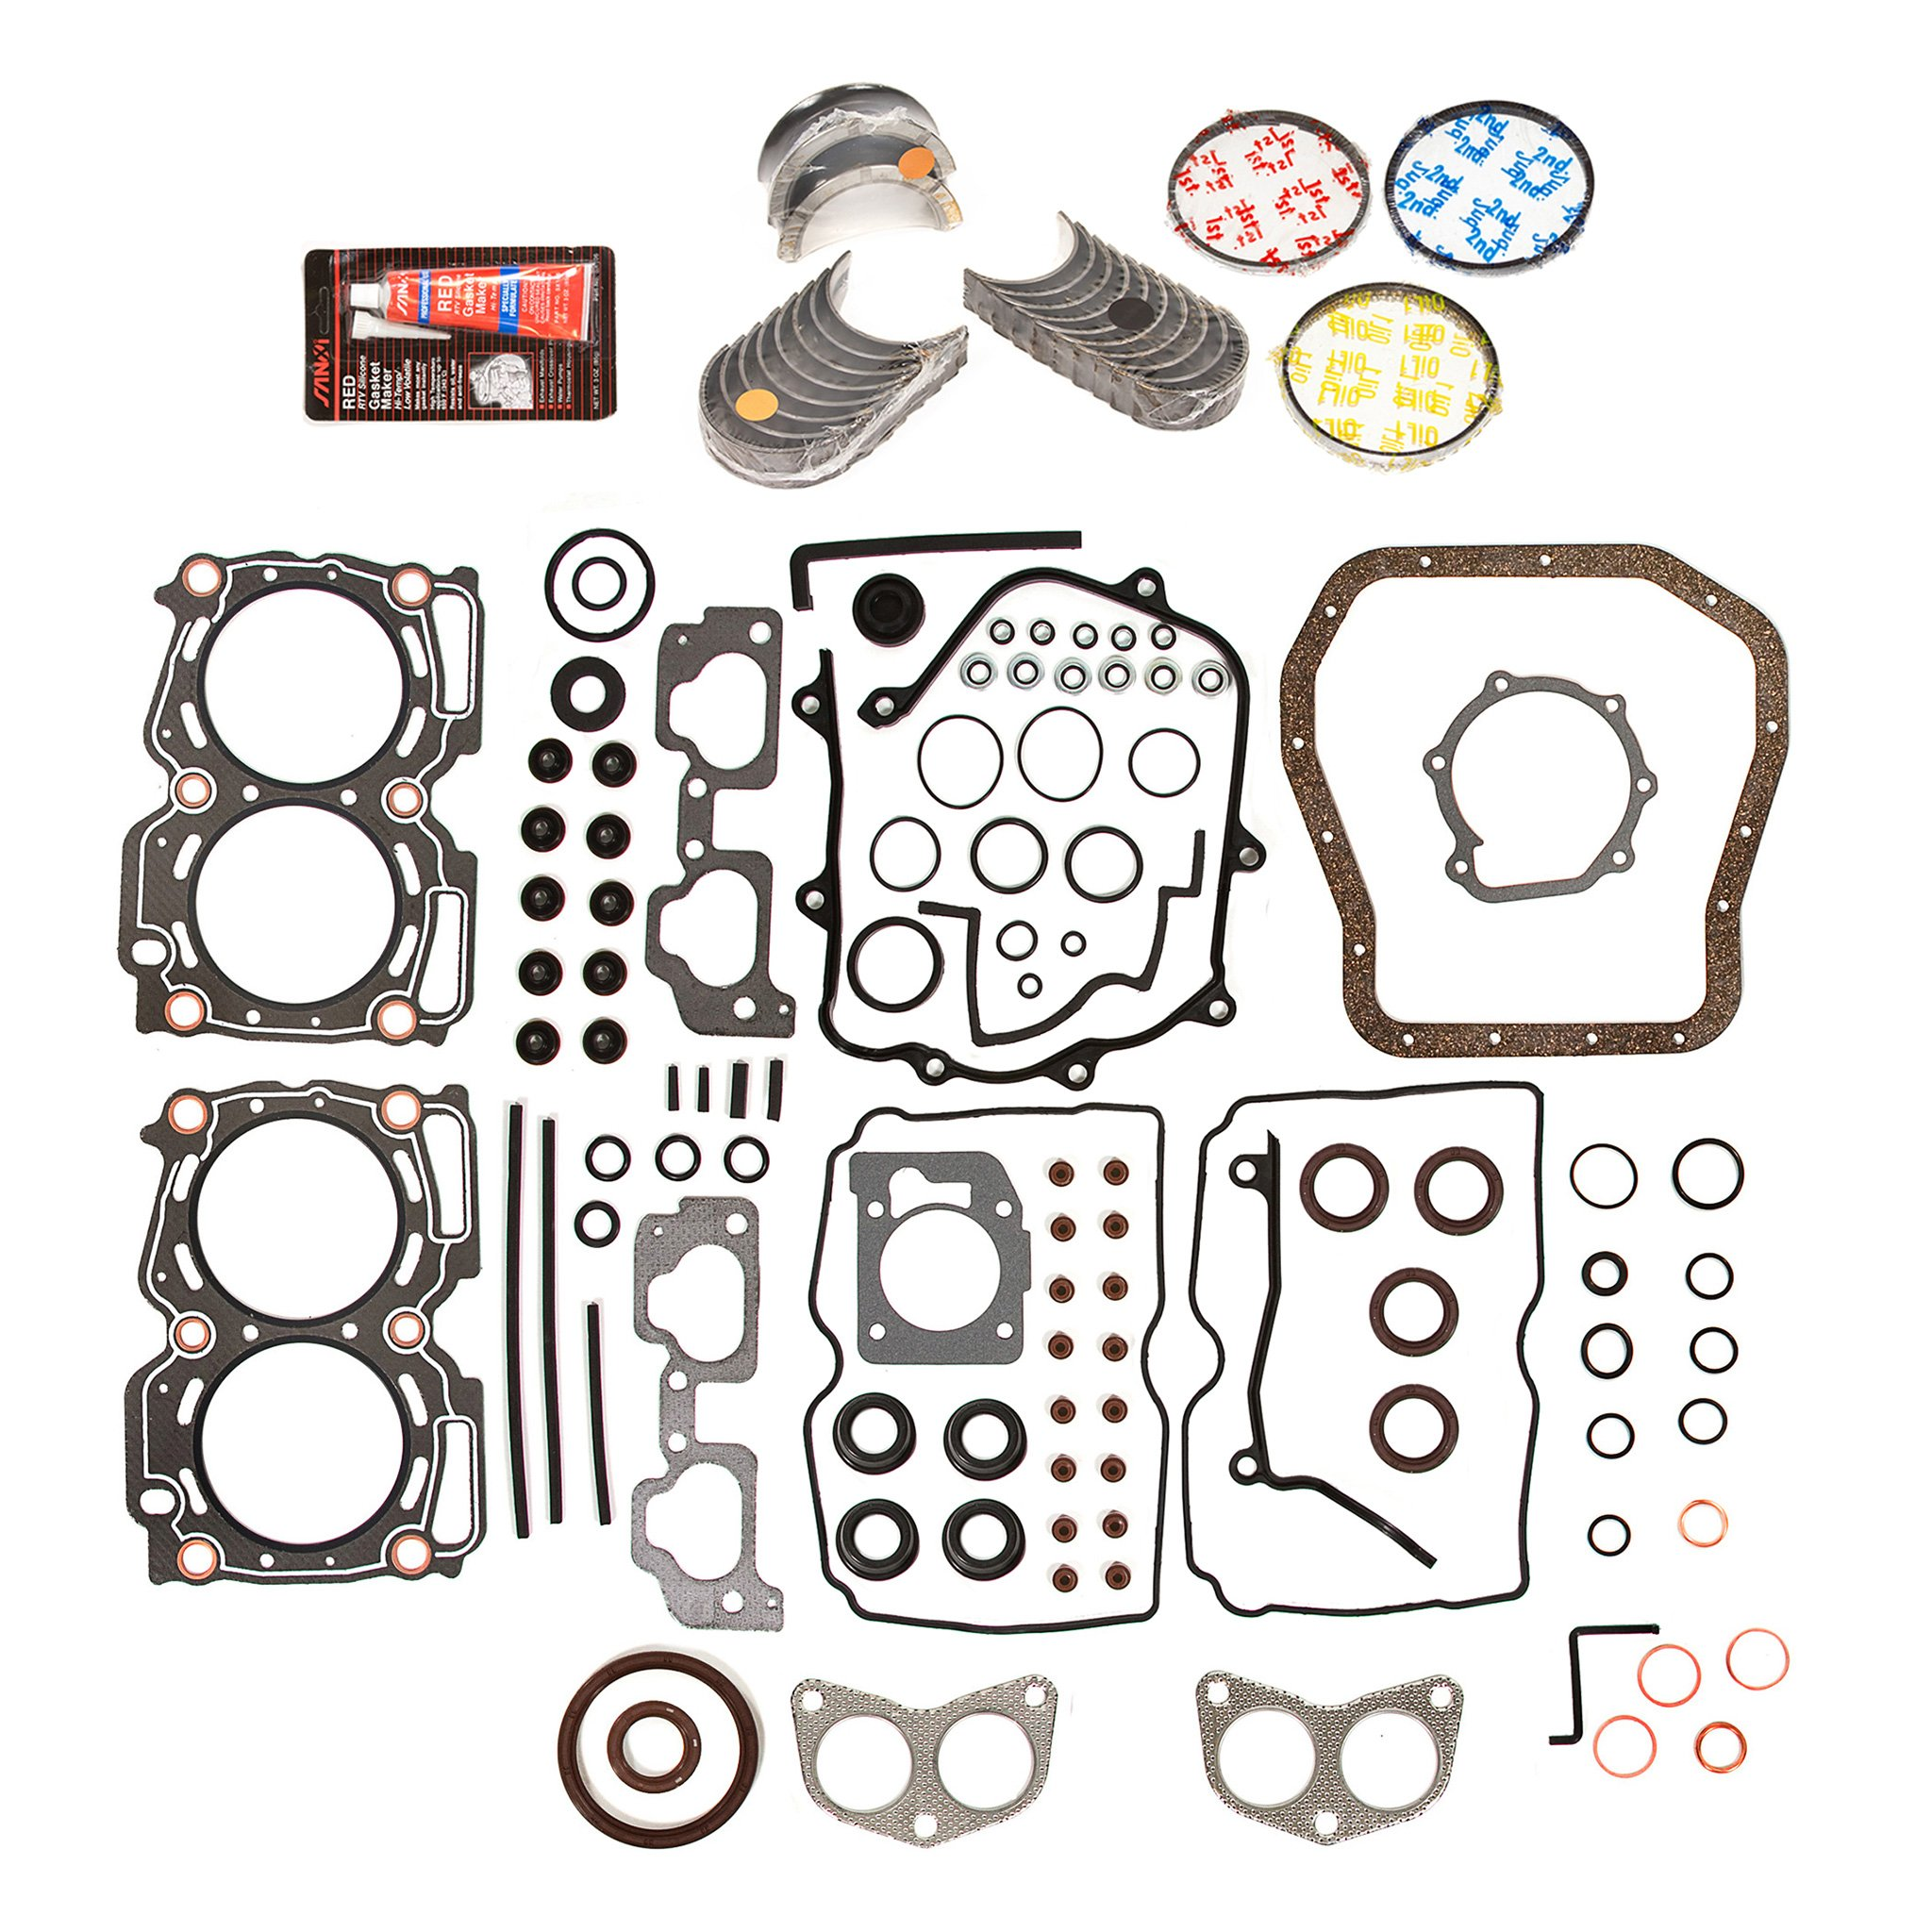 Evergreen Engine Rering Kit FSBRR9009EVE 99-03 Subaru Impreza Forester 2.5 SOHC EJ25 Full Gasket Set, 0.25mm / 0.010'' Oversize Main Rod Bearings, 0.50mm / 0.020'' Oversize Piston Rings by Evergreen Parts And Components